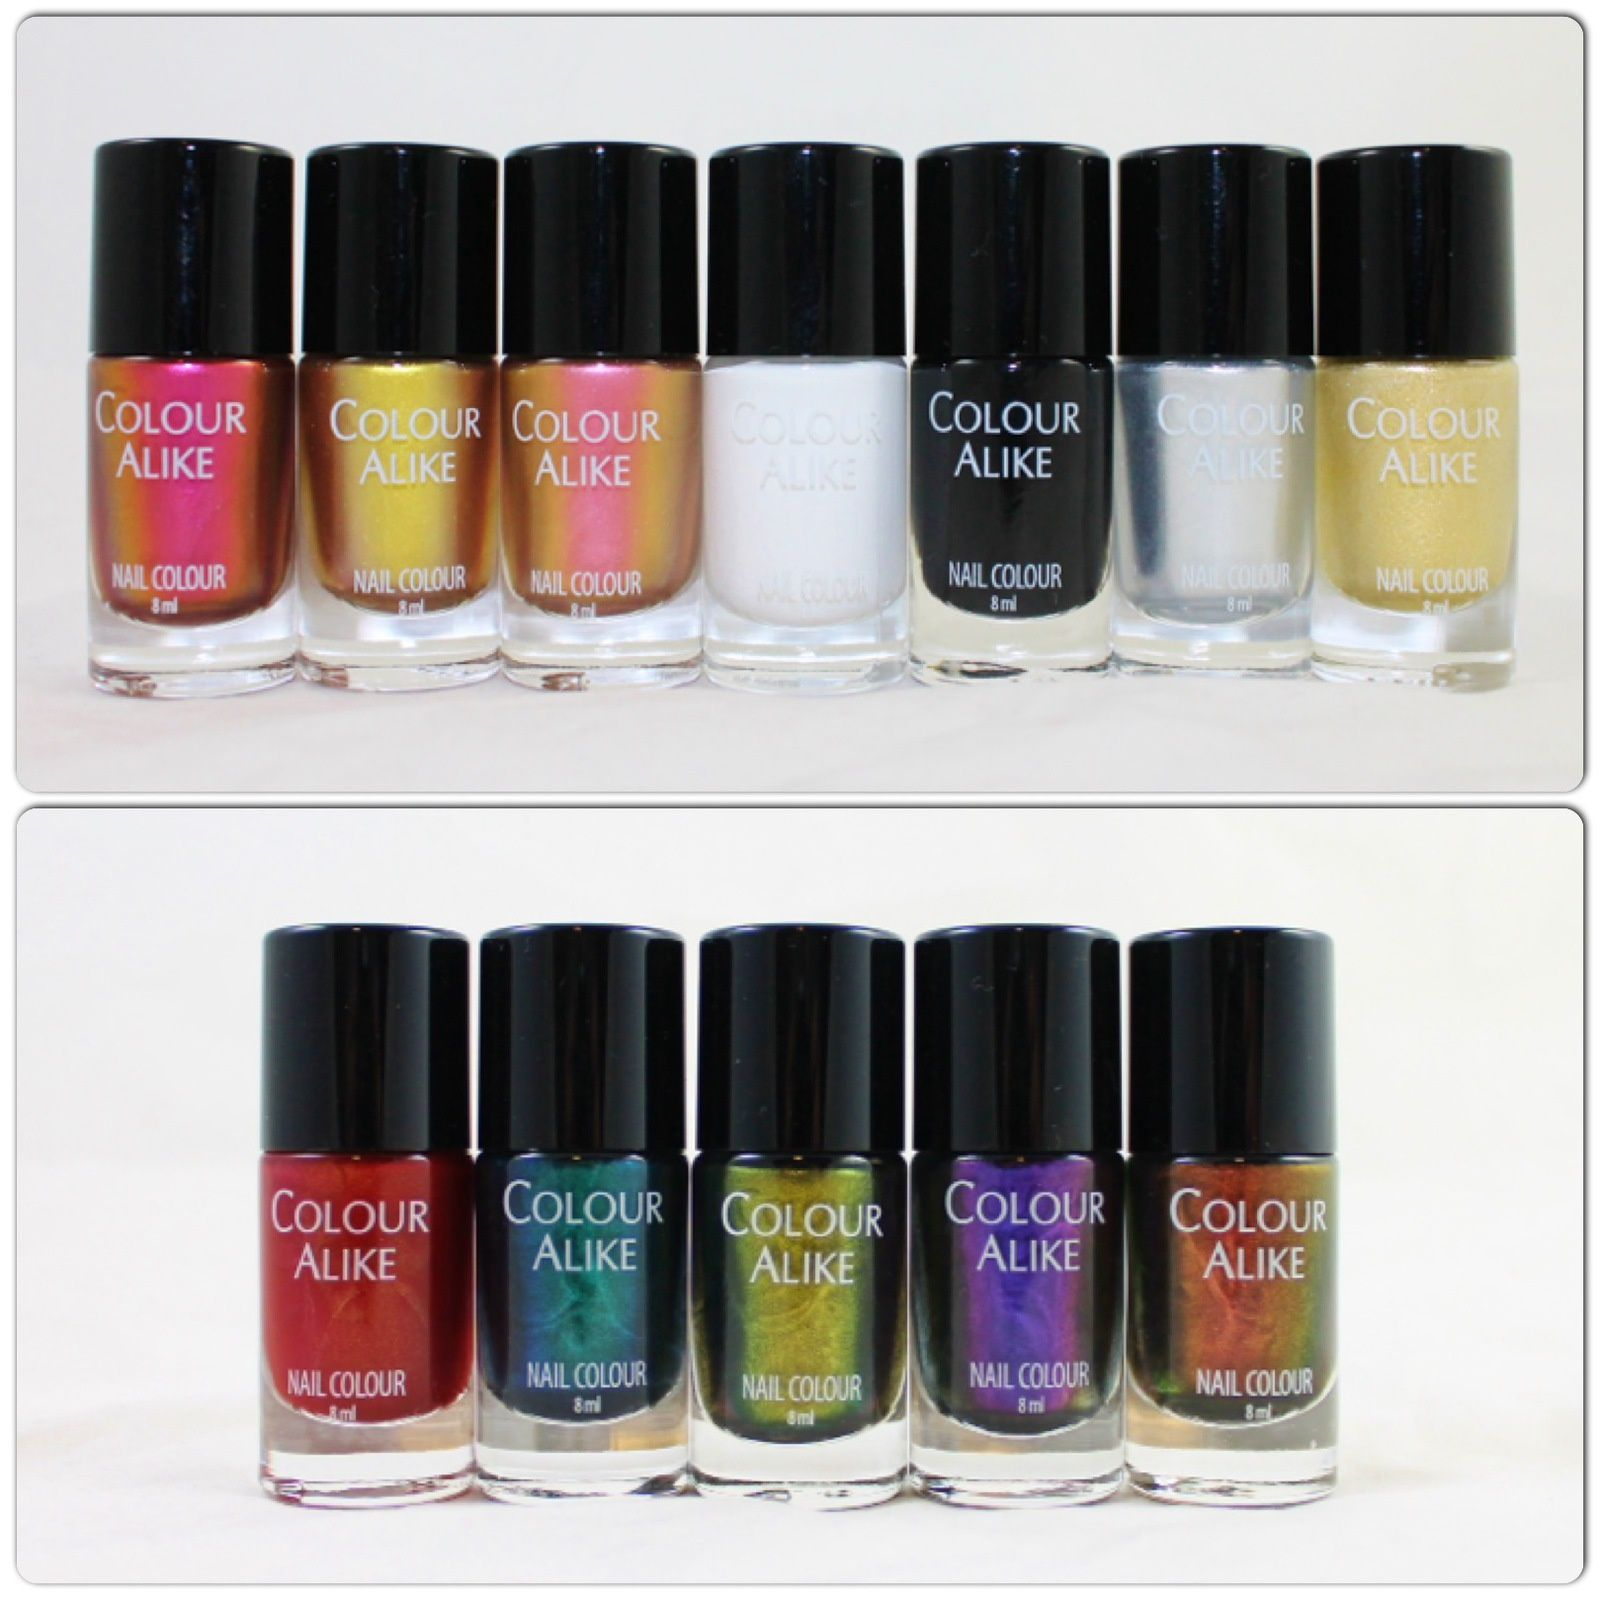 Colour Alike Stamping Polish Venus, Supernova, Mars, Kind of White, Kind of Black, Silver King, Golden Queen. Colour Alike 499, 544, 543, 541 & 542.